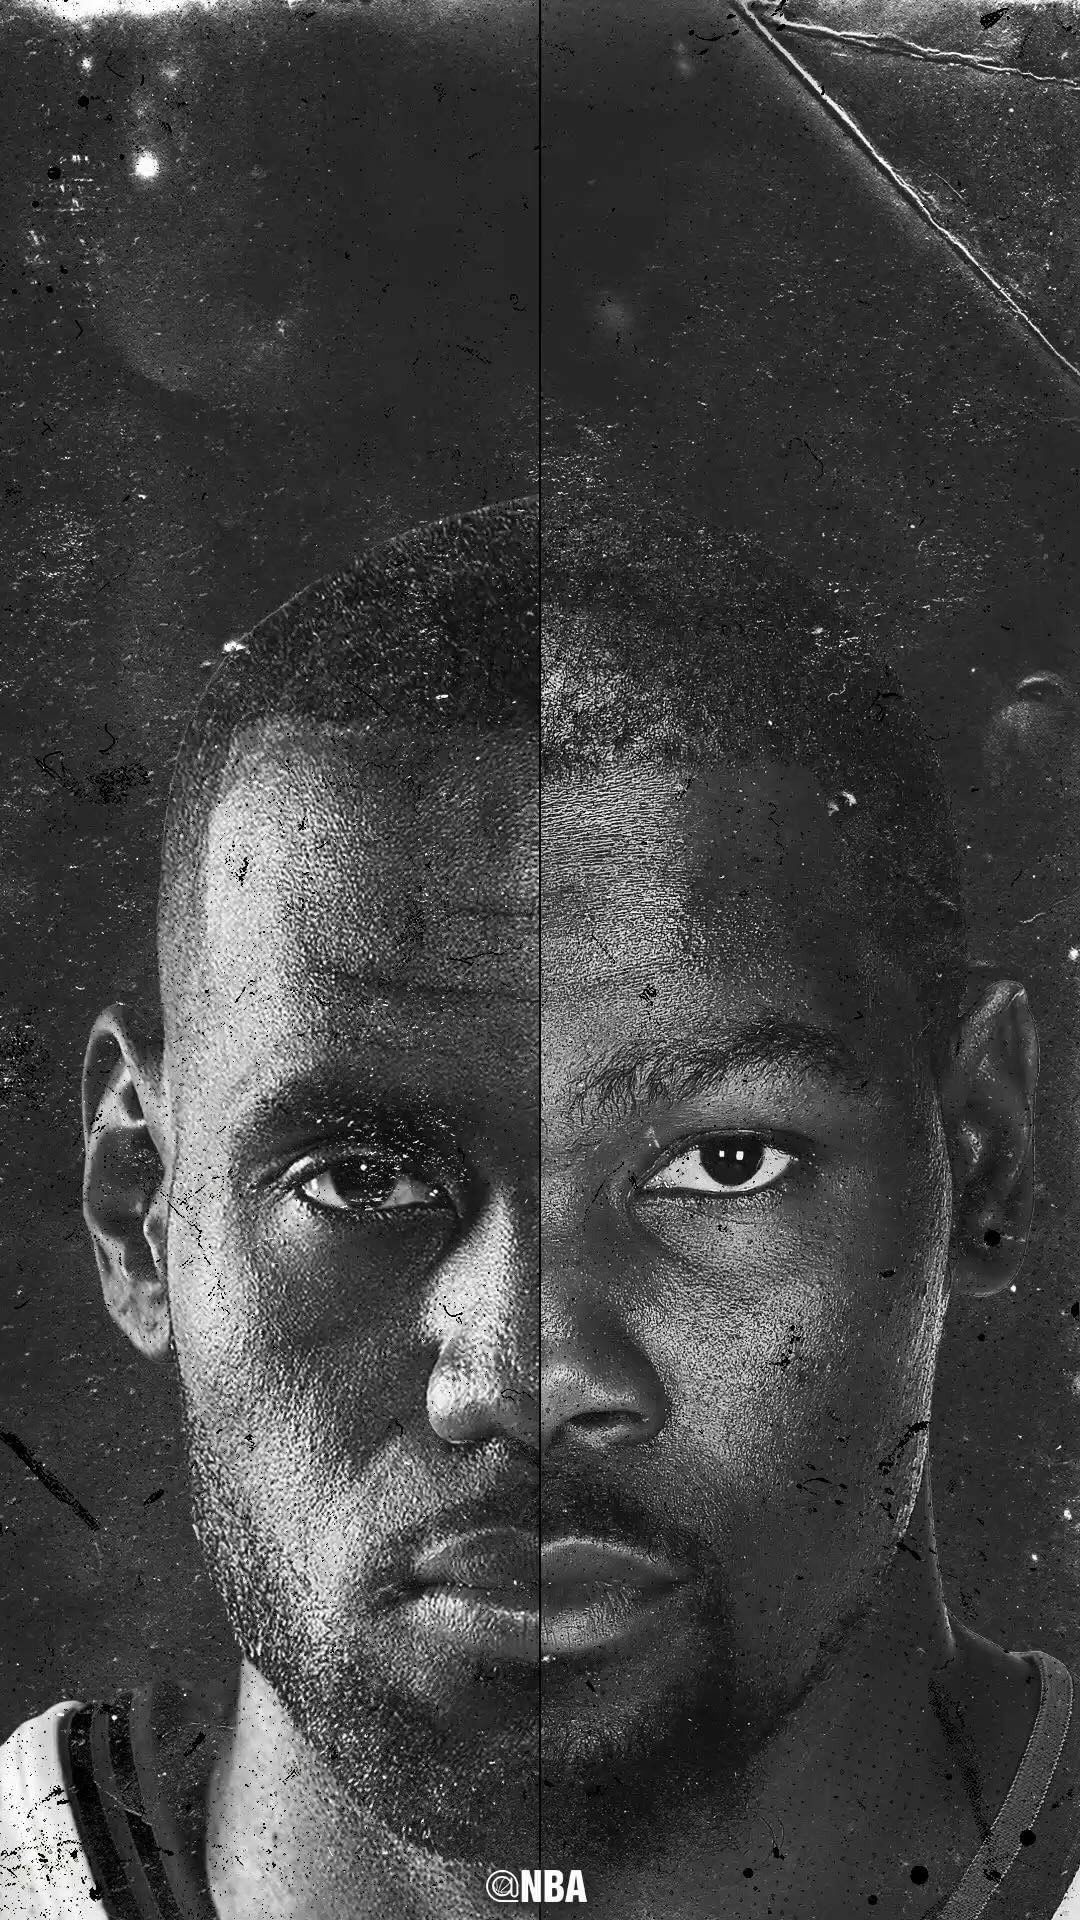 NBA wallpaper Lebron James and Kevin Durant Nba lebron james 1080x1920